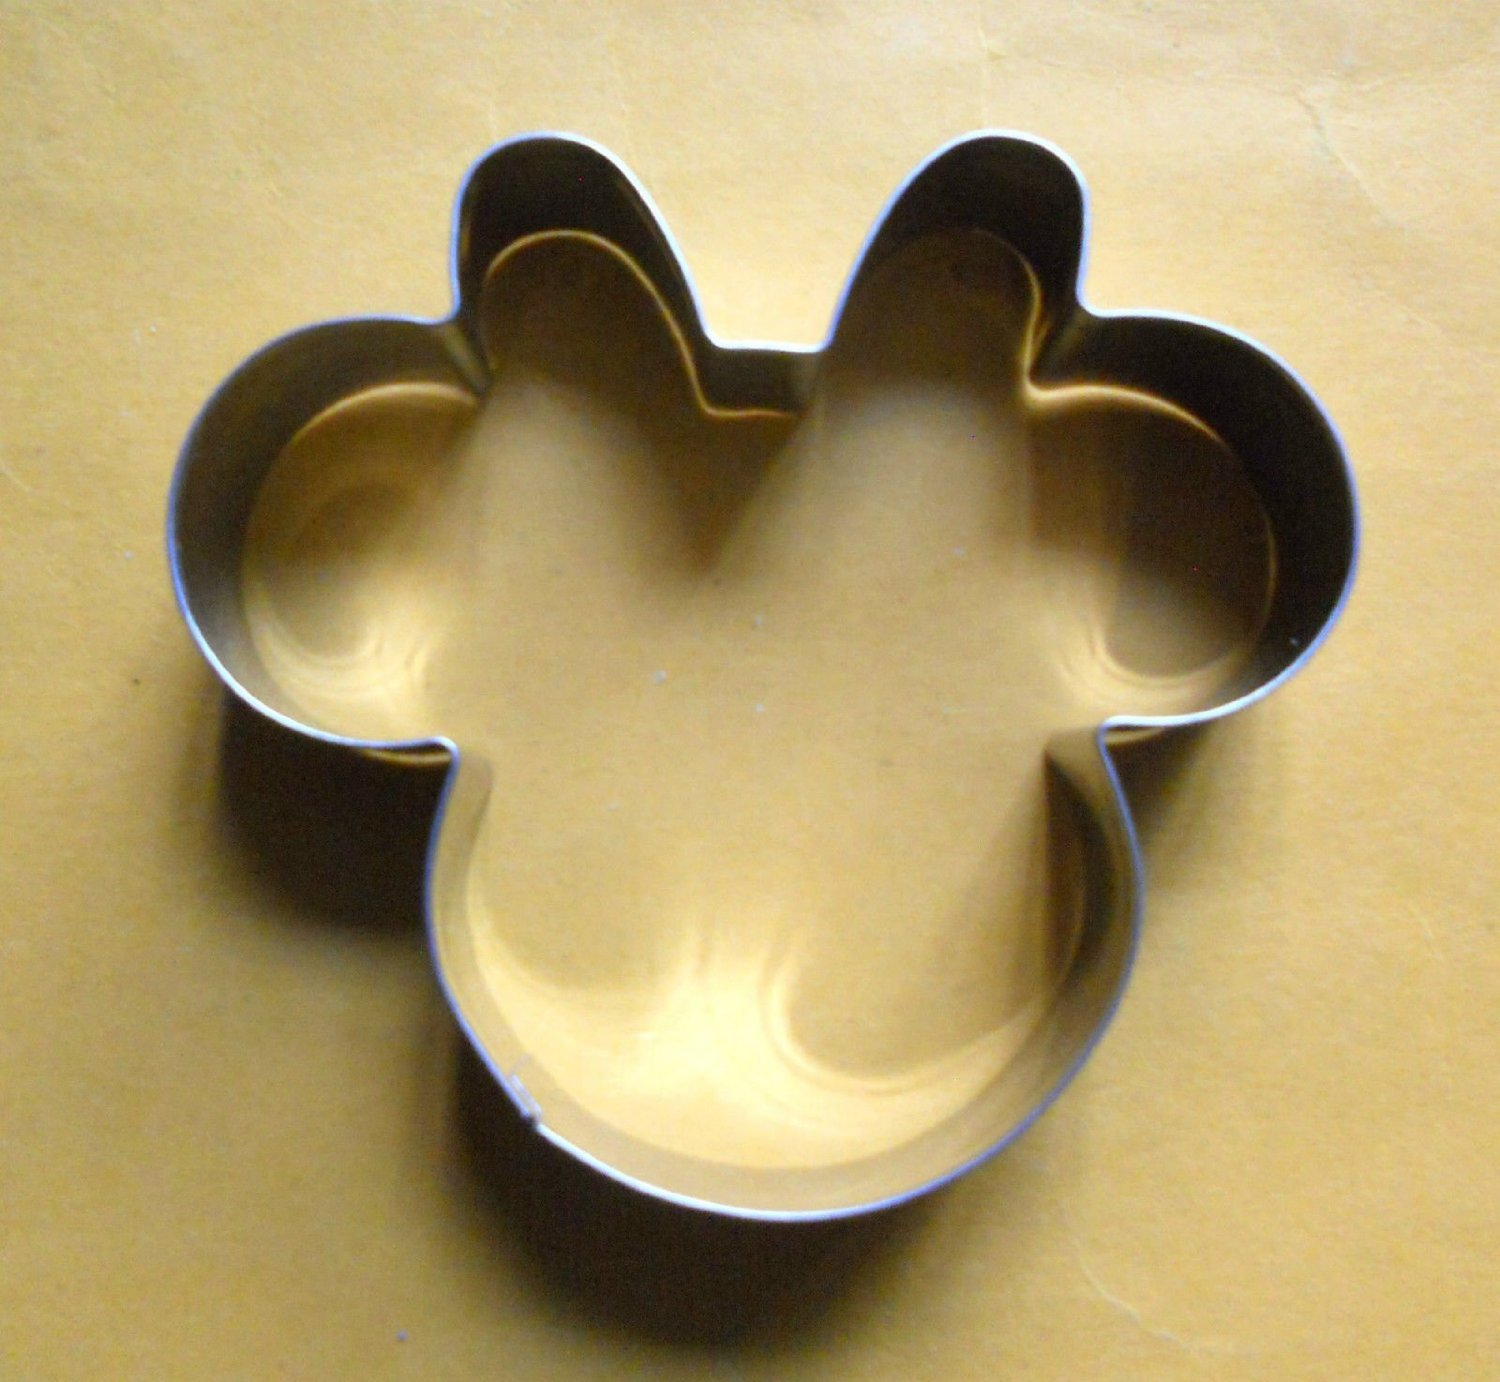 FAK Minnie Mouse Party Baking Biscuit Pastry Steel Cookie Cutter FAK Fungshop Disney 001